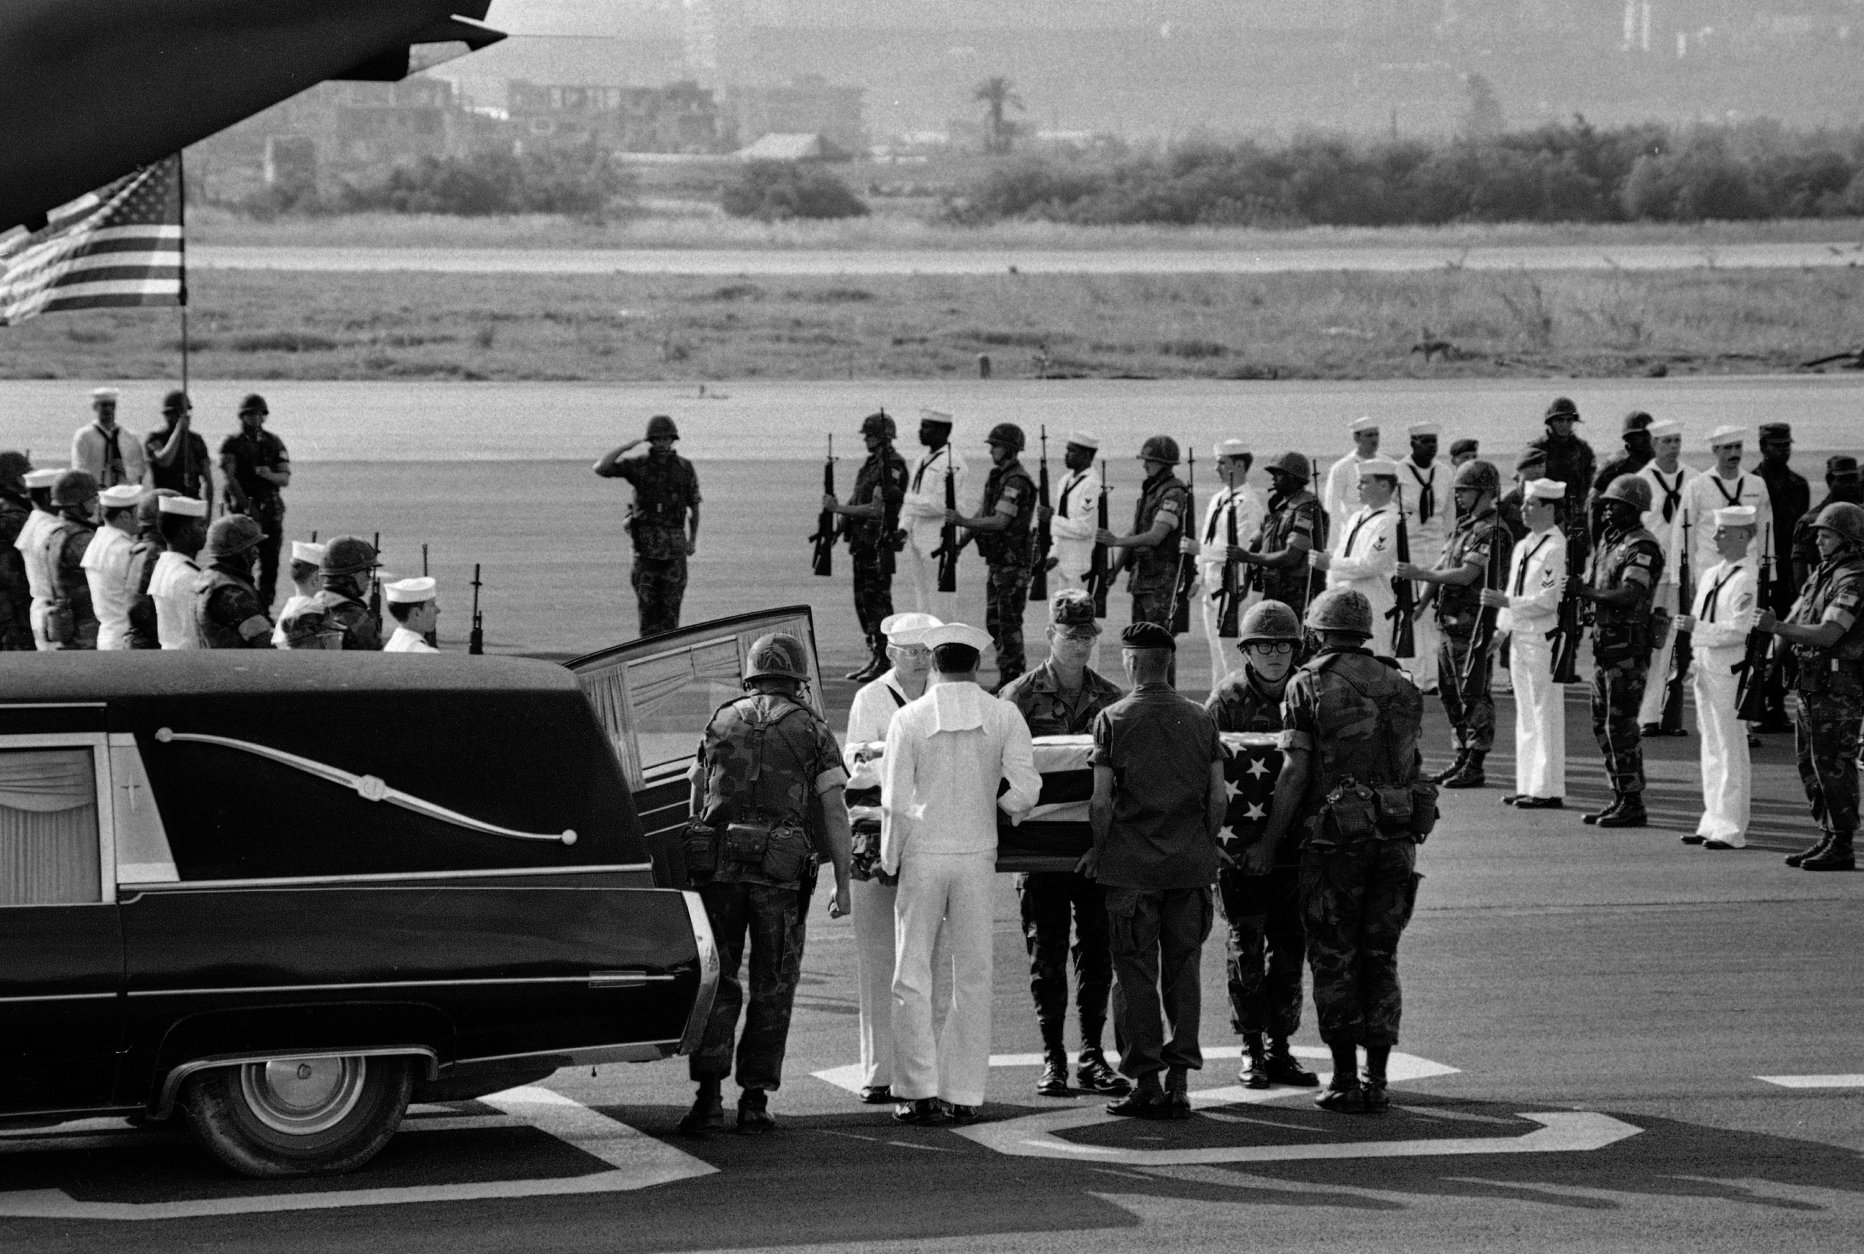 U.S. Marine and Navy pallbearers remove the coffin of one of the American staffers killed in the U.S. Embassy bomb blast in Beirut, from a hearse, April 23, 1983.  A Marine and Navy honor guard stands at attention as the bodies were then loaded on a C-141 transport plane bound for Washington.  Color guard and tail of plane are seen in the background.  (AP Photo/Zuheir Saade)